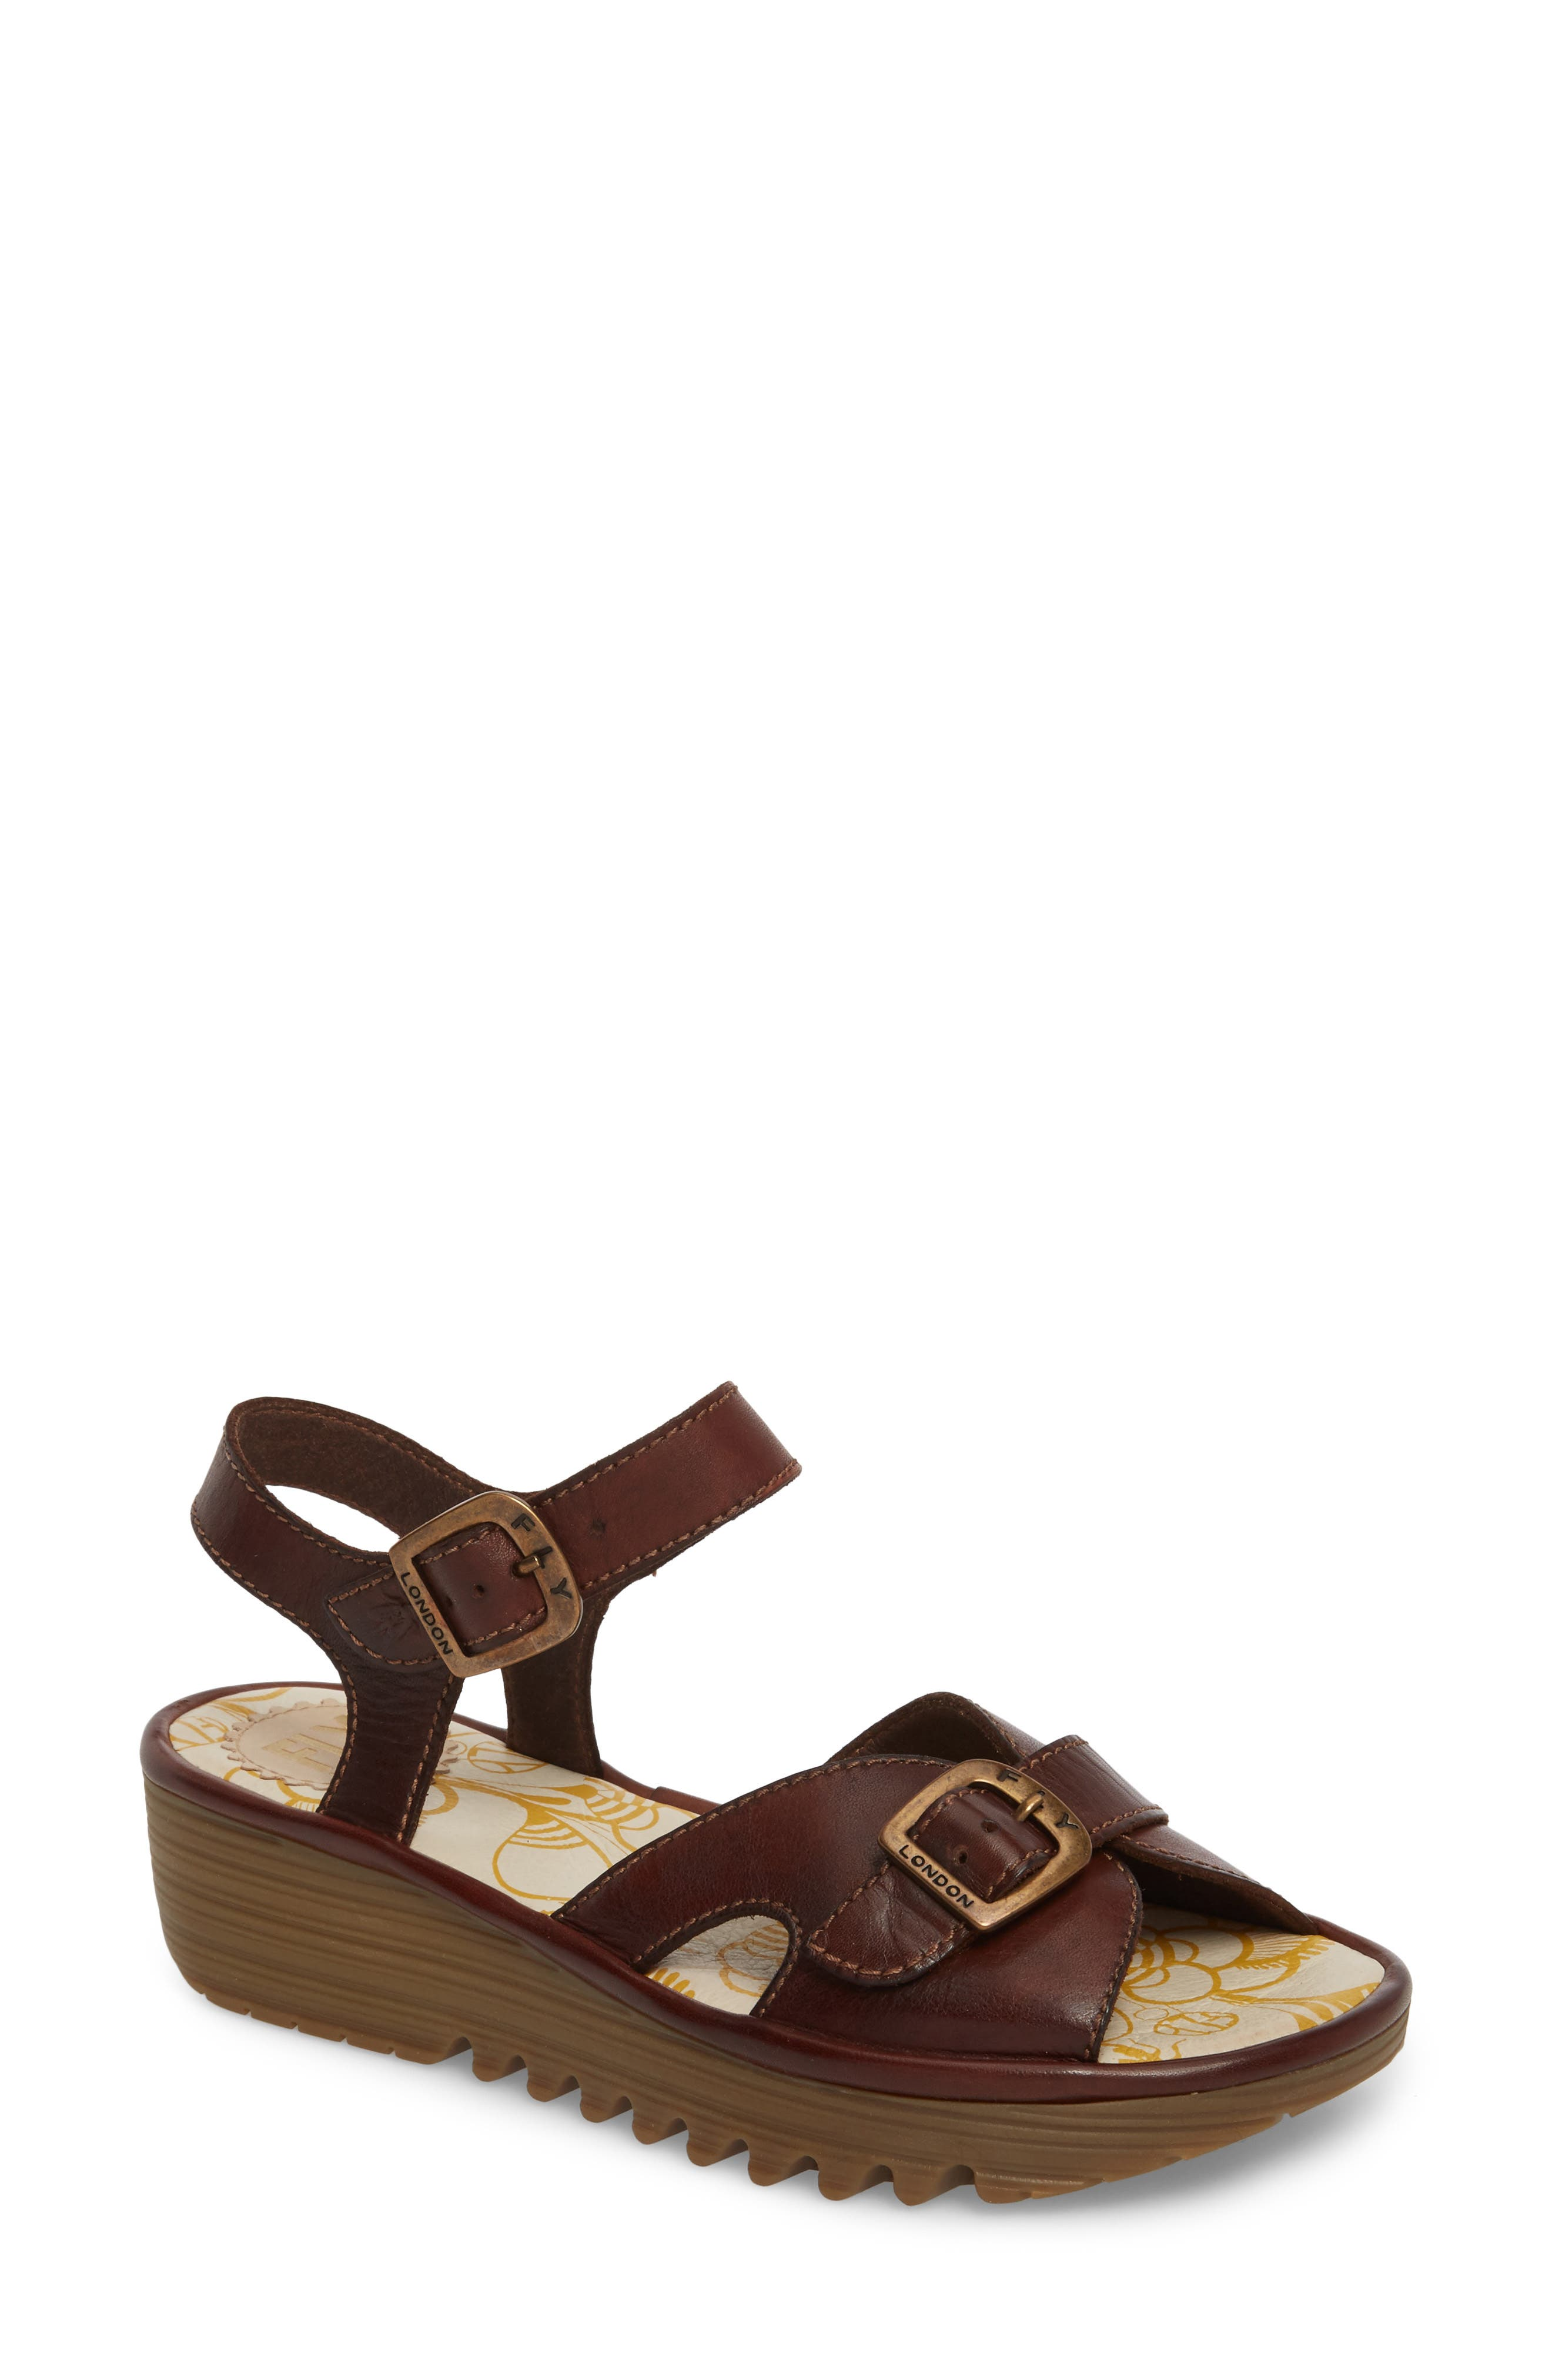 Fly London Egal Sandal, Brown